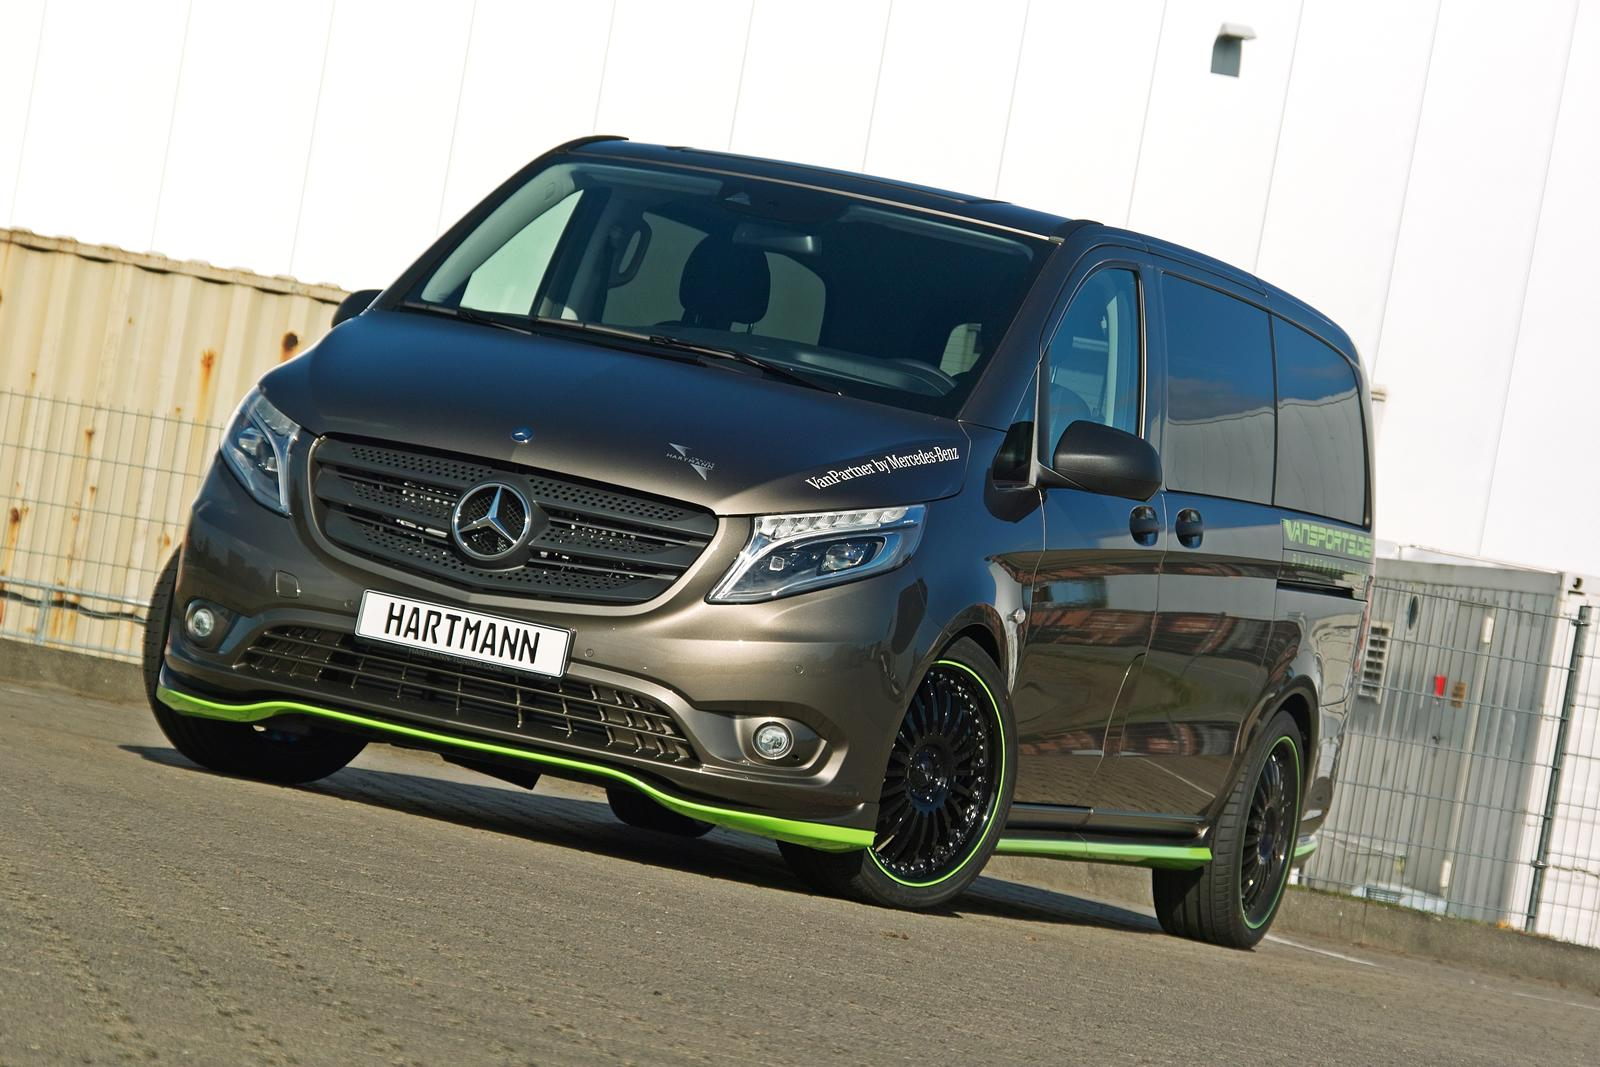 hartmann mercedes benz v class will scare your kids autoevolution. Black Bedroom Furniture Sets. Home Design Ideas